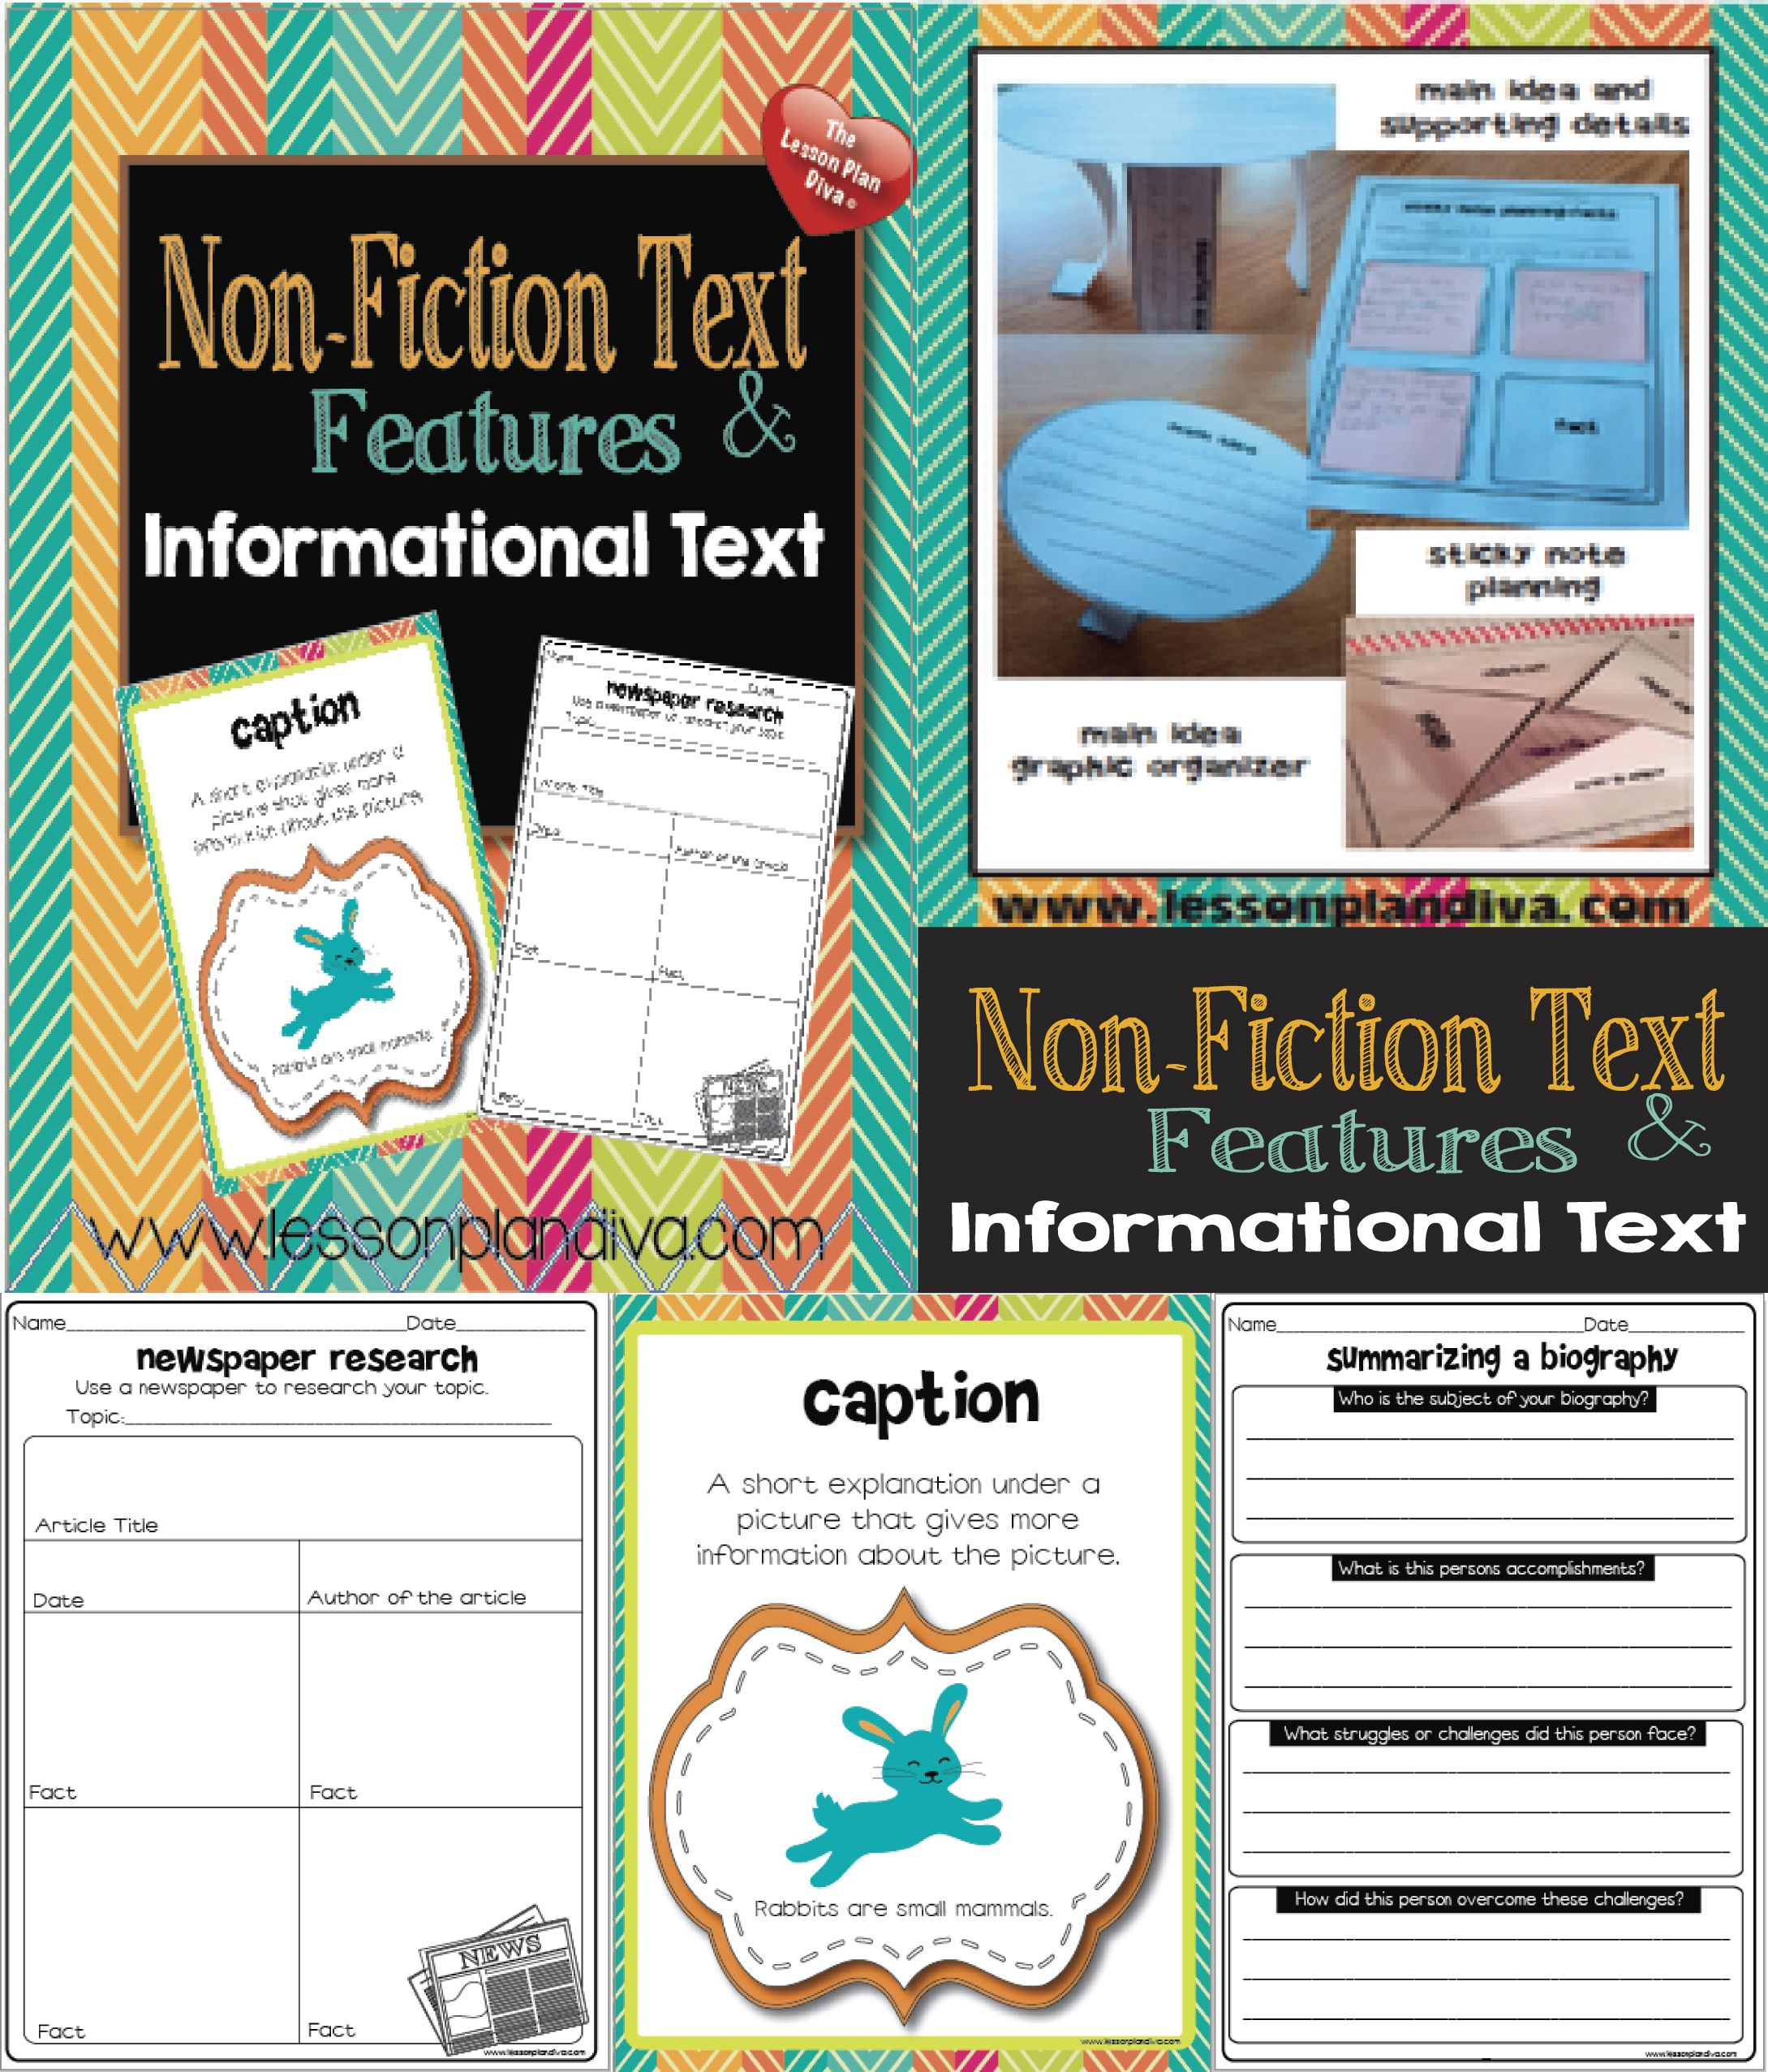 Basics For Writing A Research Project 3rd Grade Level Nonfiction Texts Fiction Text Nonfiction